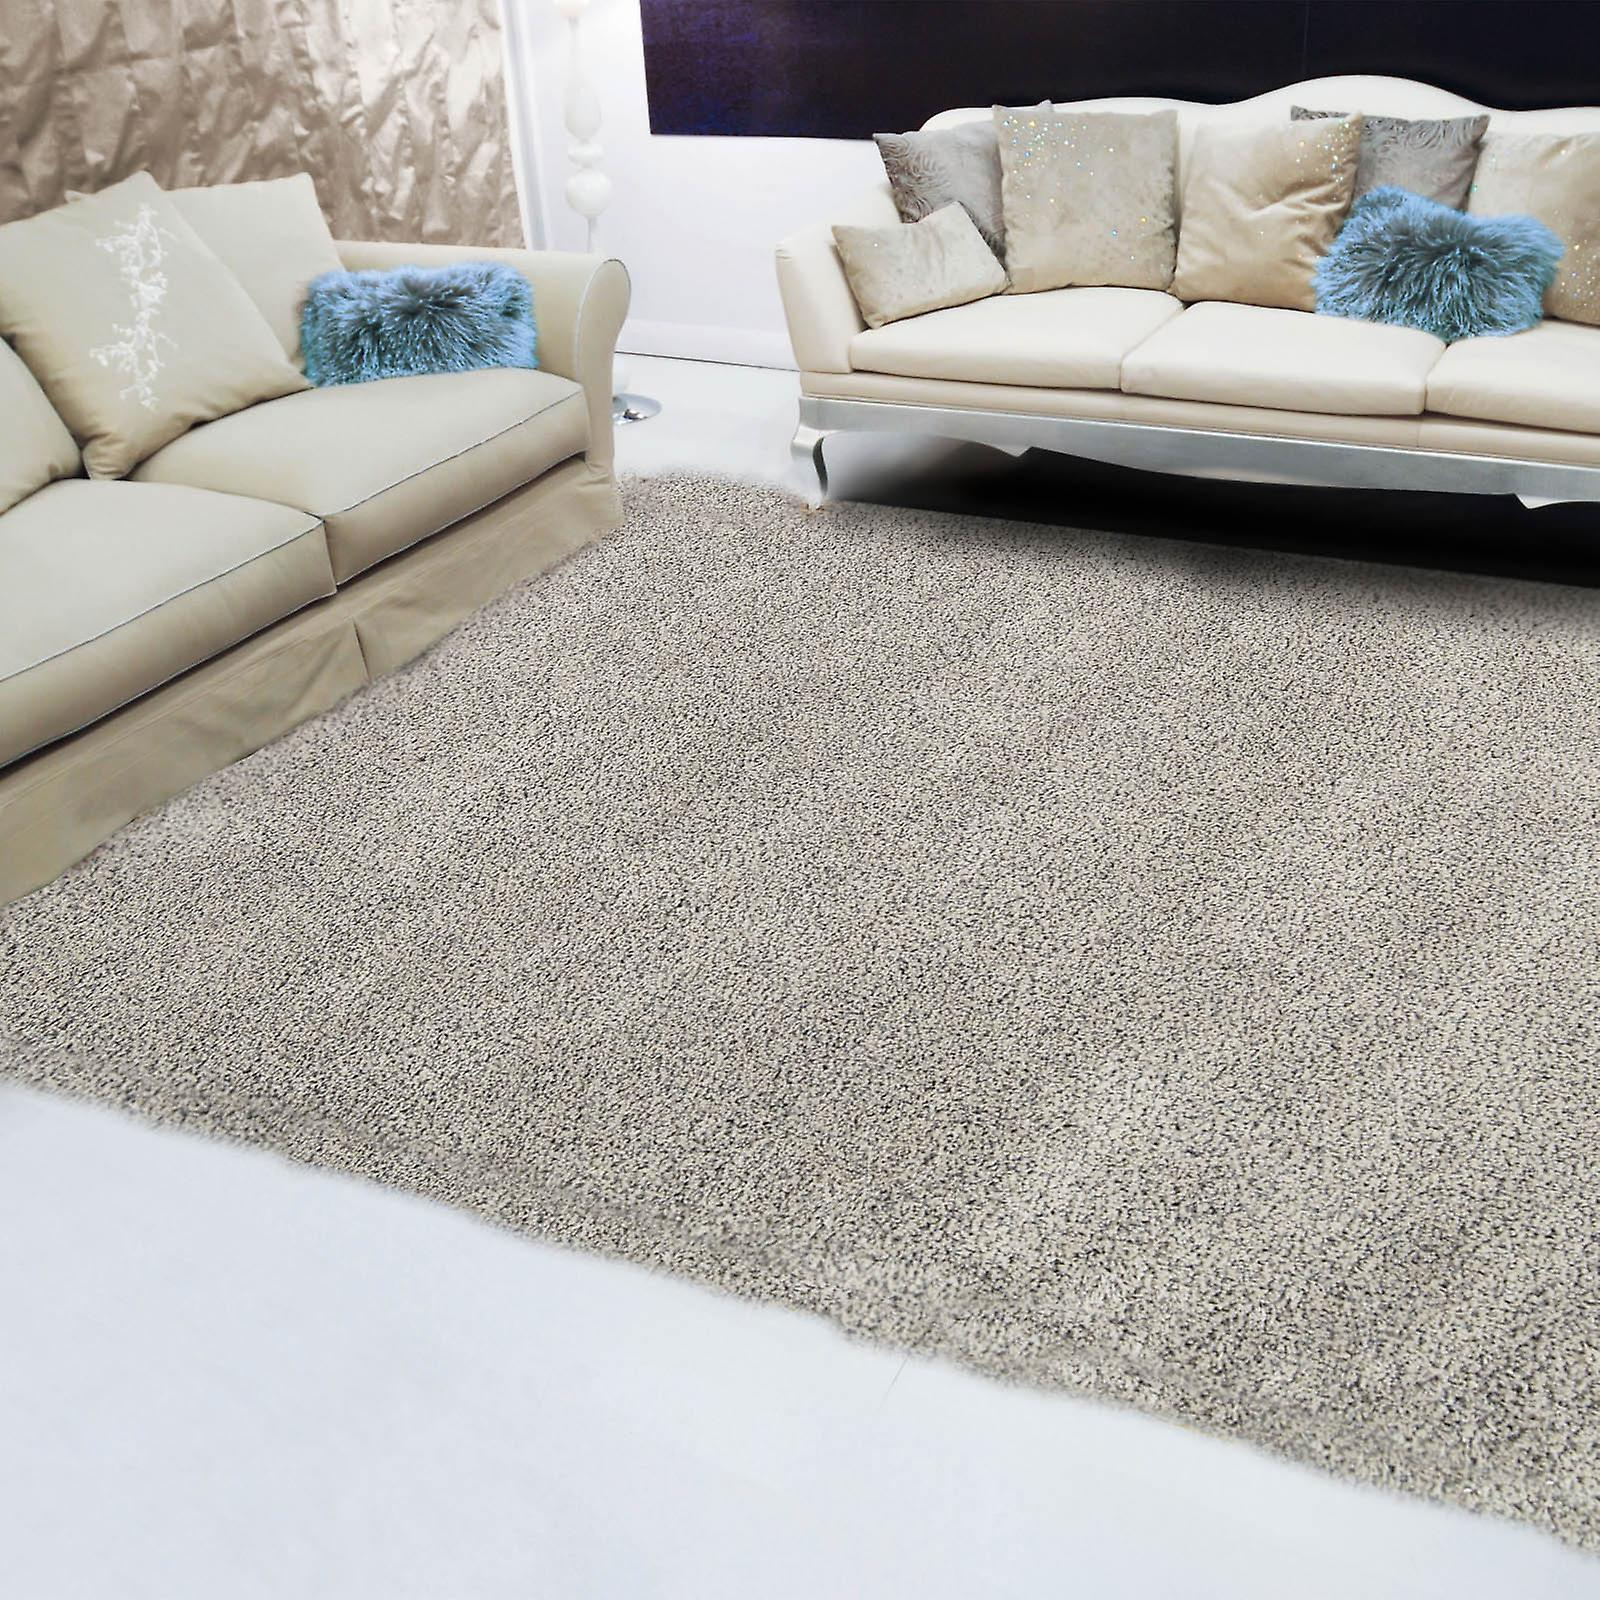 Amore Rugs Amor1 In Light Grey